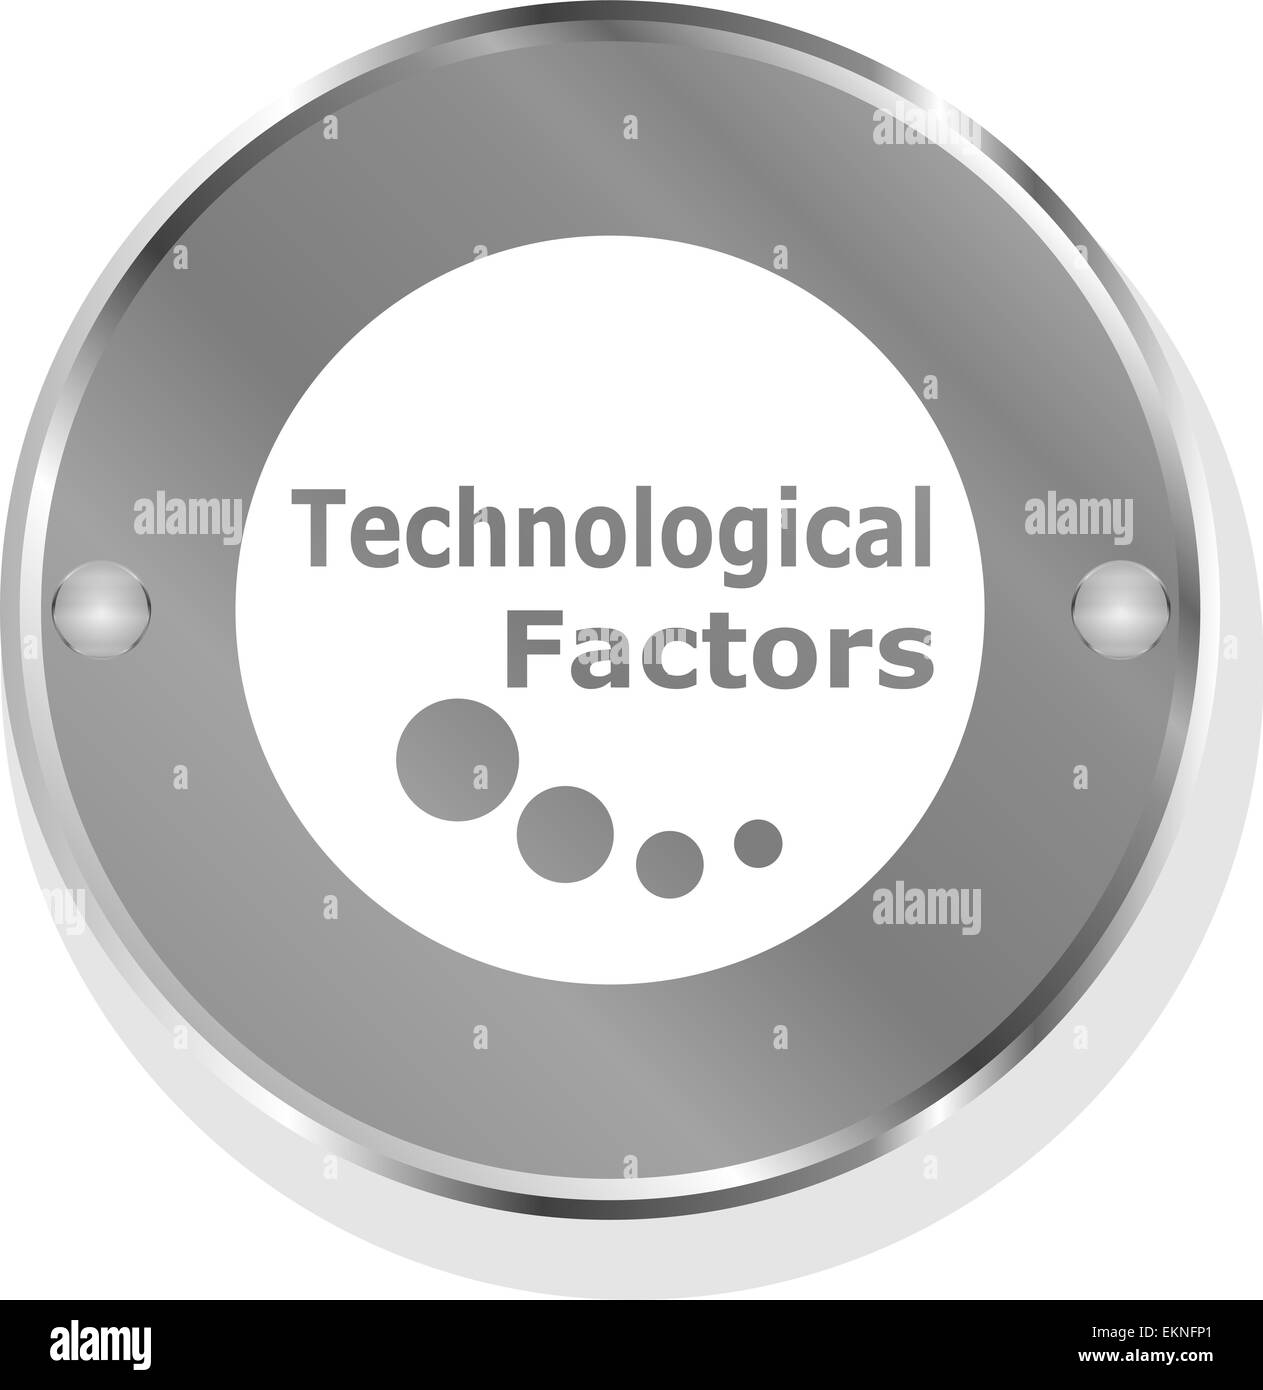 technological factors metallic button - Stock Image